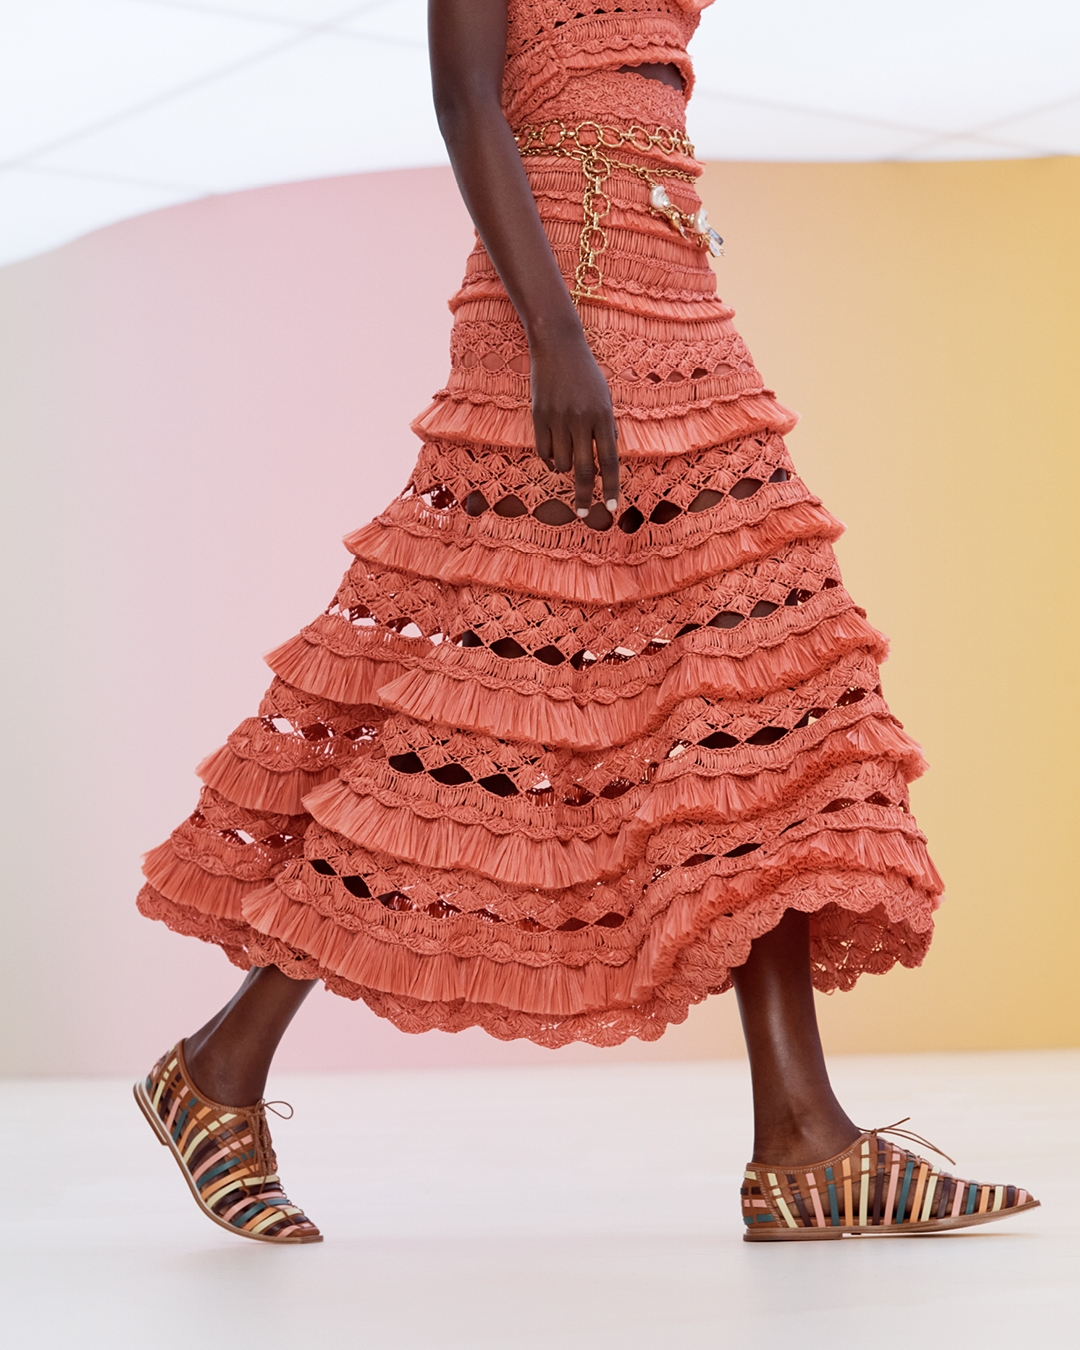 IN THE DETAIL: LOOK 15 RESORT READY TO WEAR 2022, THE POSTCARD